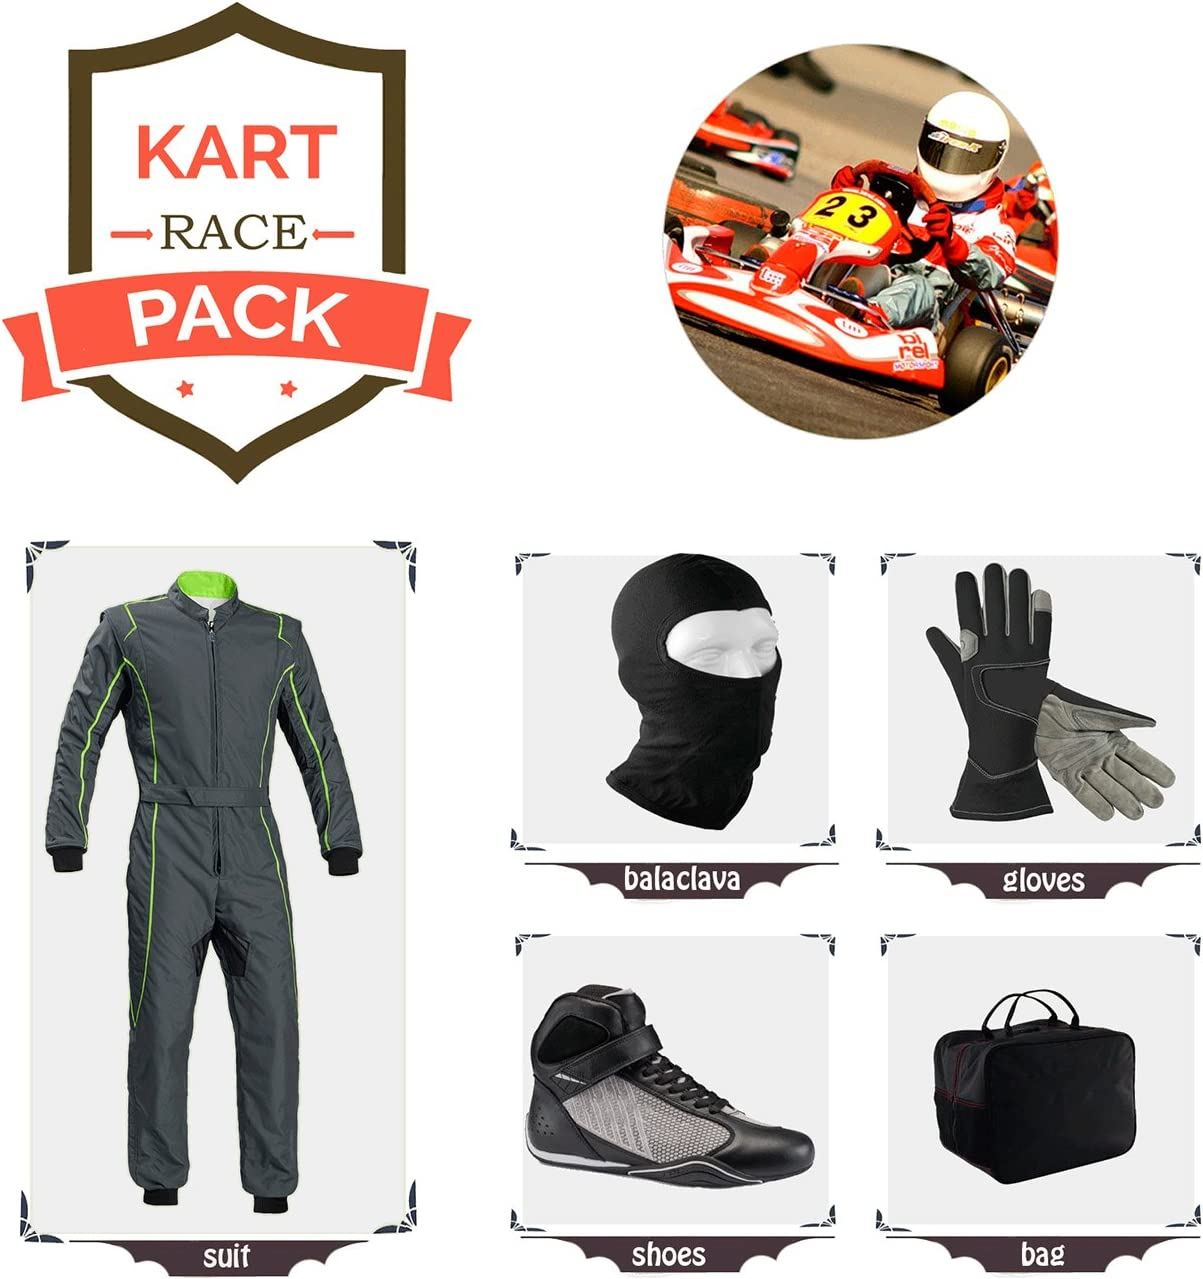 Kart Race suit all you can have free balaclava and gloves